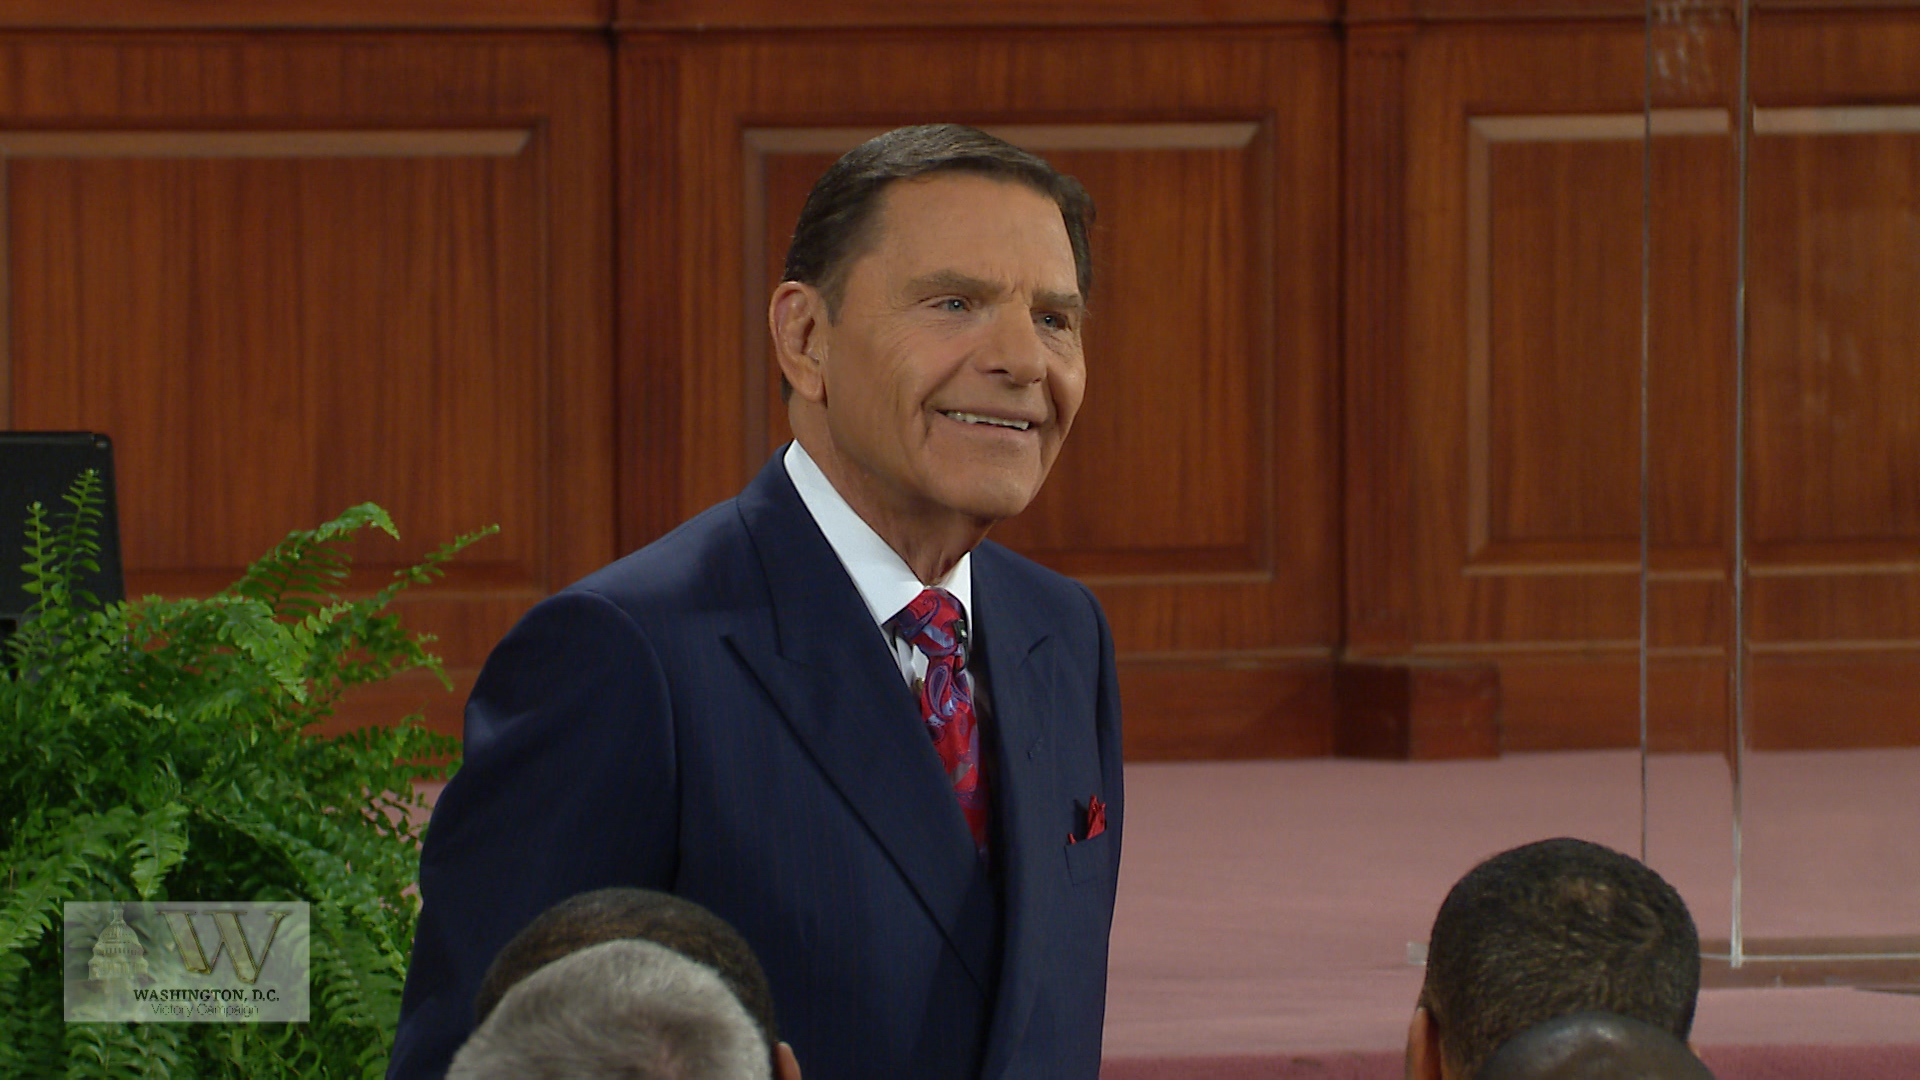 God is able to make all grace abound toward you for financial prosperity. This grace arouses in you the desire to give, and supplies you with joy. Not just in your finances but in your soul as well. Join Kenneth Copeland as he continues to teach this offering message during the close of the Saturday evening session at the 2015 Washington, D.C. Victory Campaign in Woodbridge, Virginia.